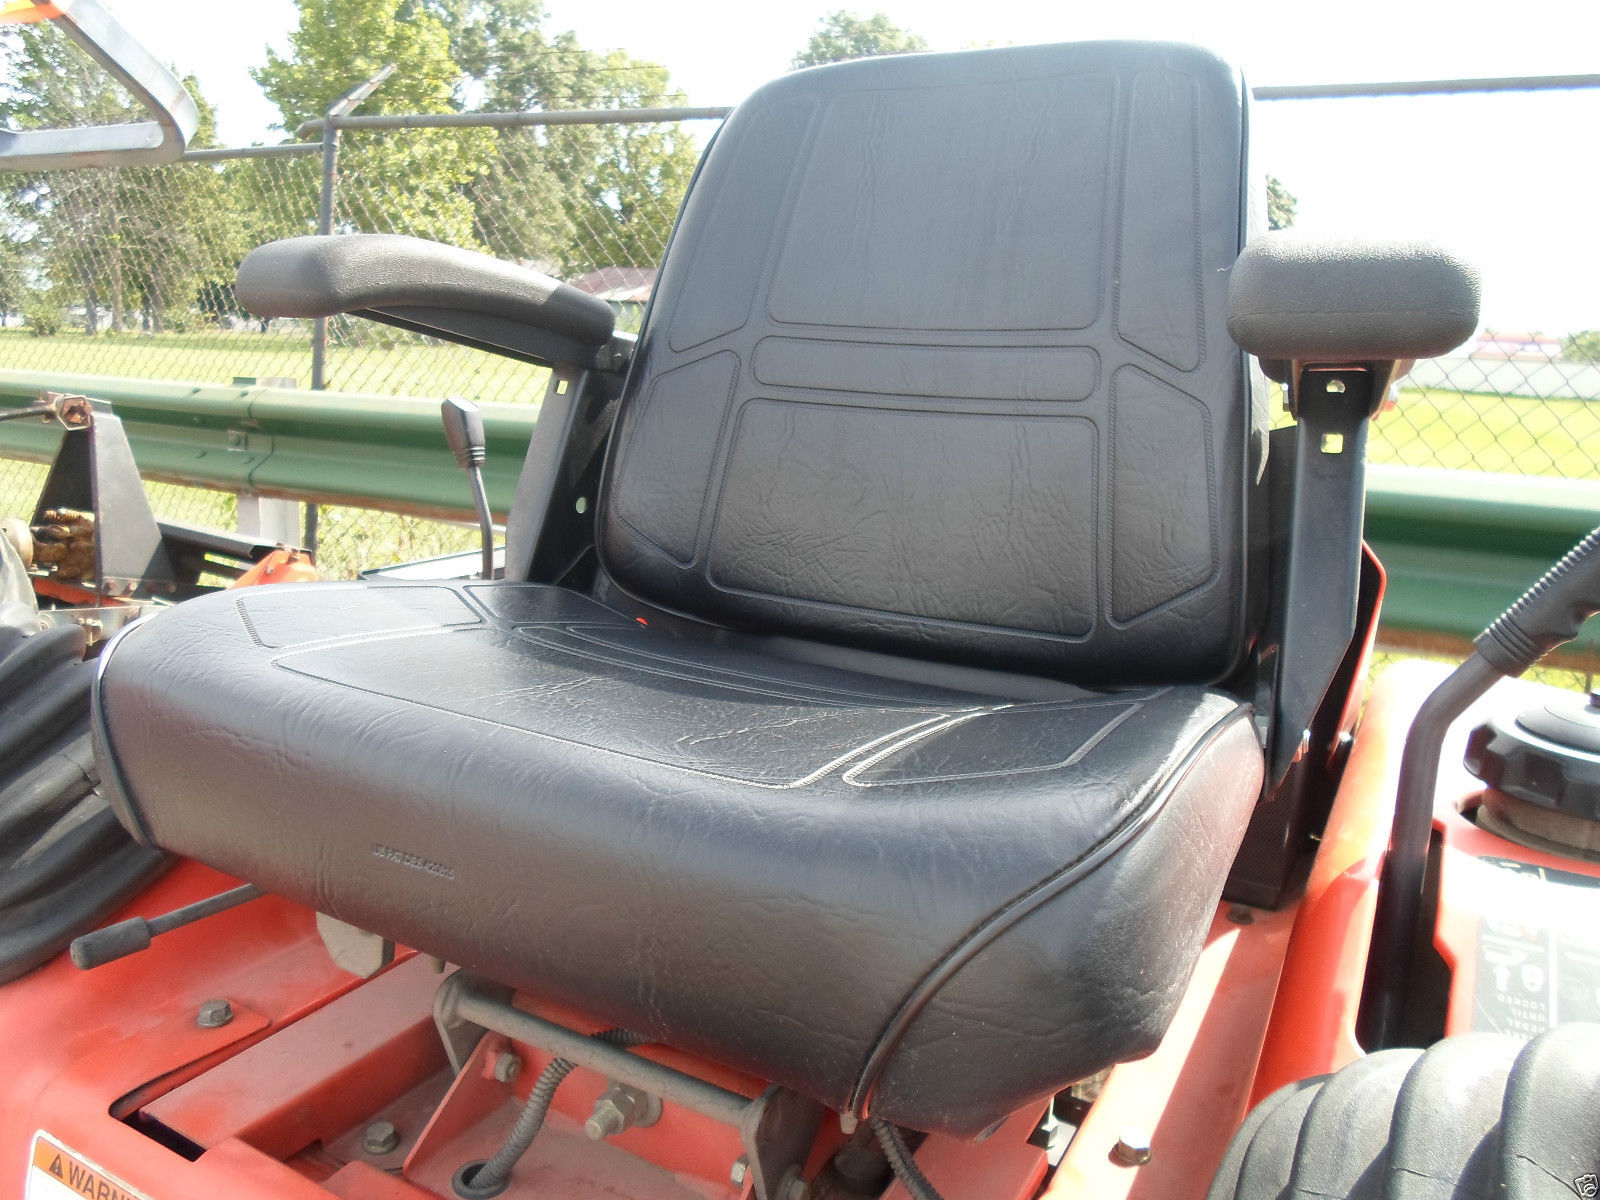 New Black HIGH BACK SEAT for Woods ZTR Zero Turn Lawn Mower Rider Made in USA